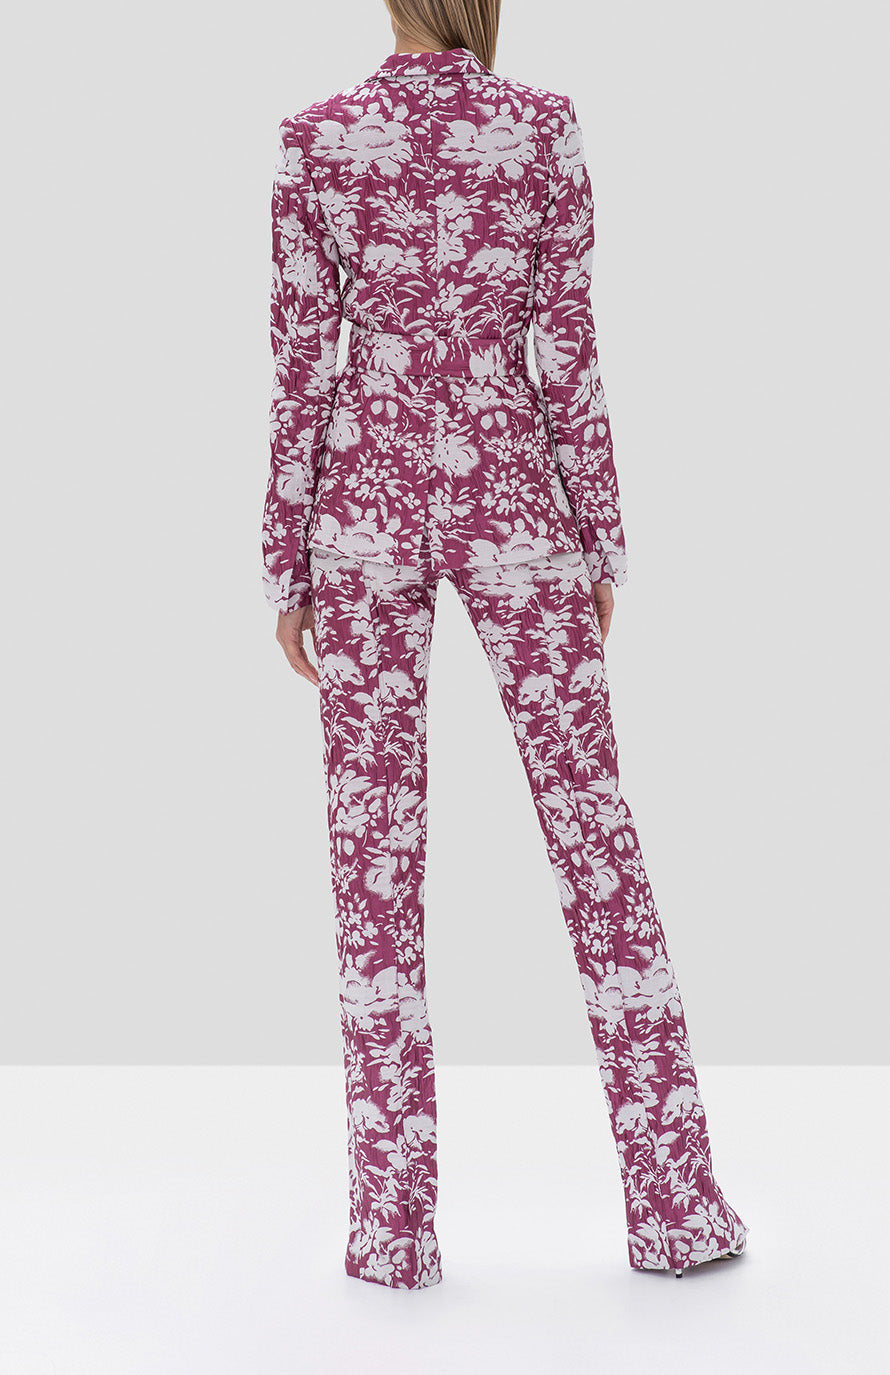 Alexis Raquelle Jacket and Burgos Pant Fuchsia Garden Jacquard from the Fall Winter 2019 Collection - Rear View